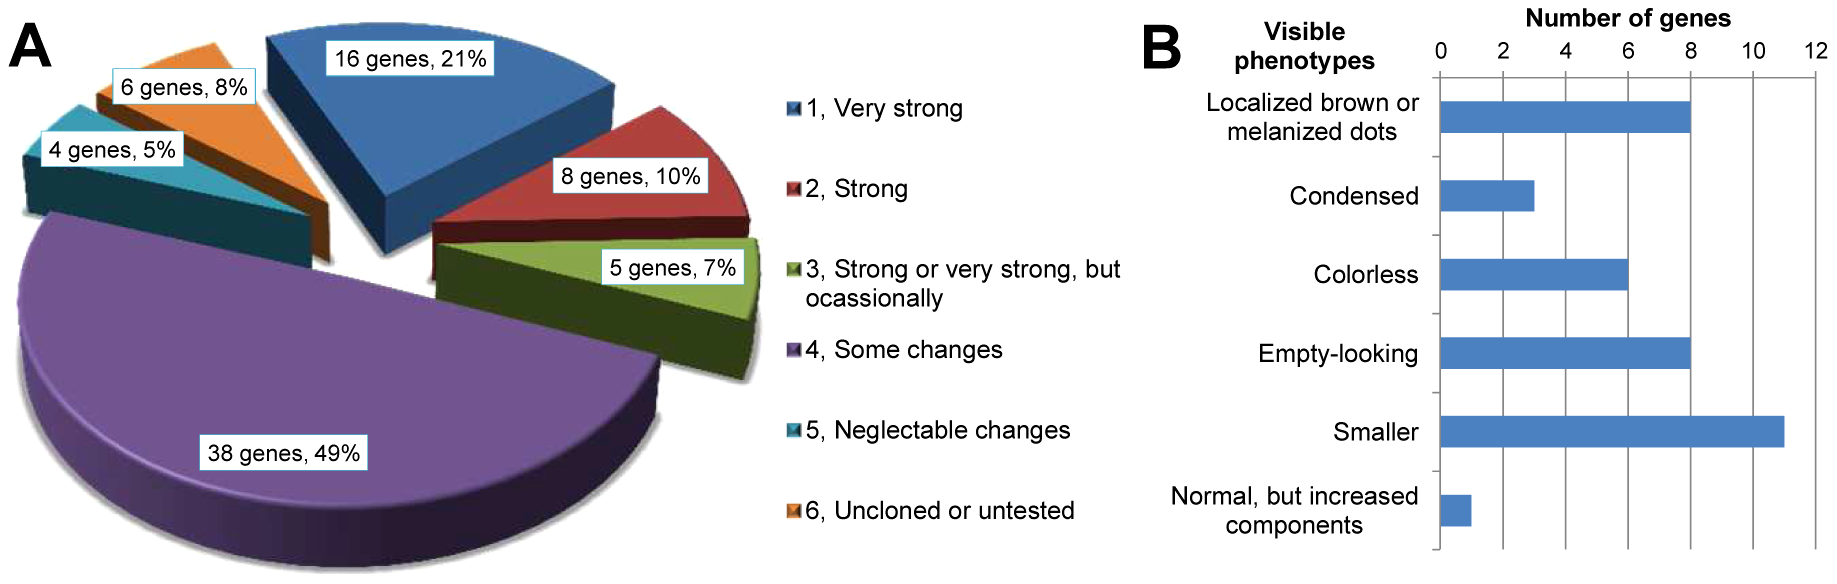 Phenotype classifications of 77 highly gland-specifically expressed genes by RNAi.